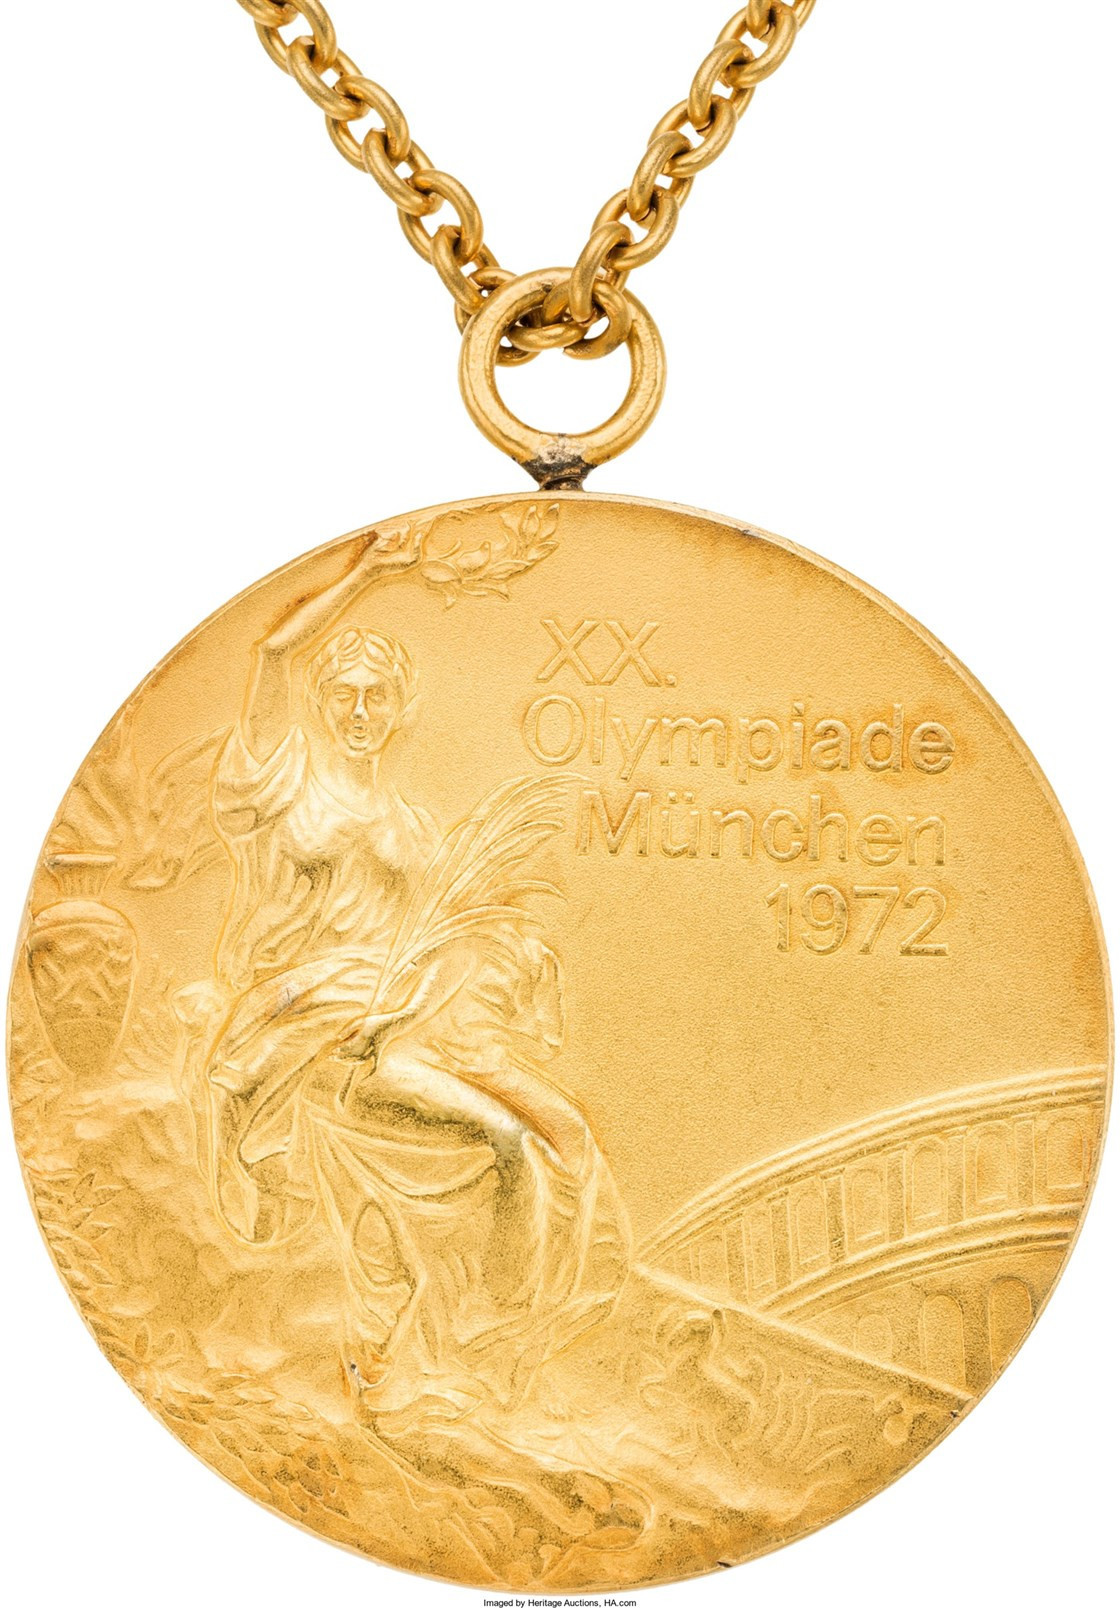 Olga Korbut sold several items of memorabilia, including her Olympic gold medals, at an earlier auction in 2017 ©Heritage Auctions